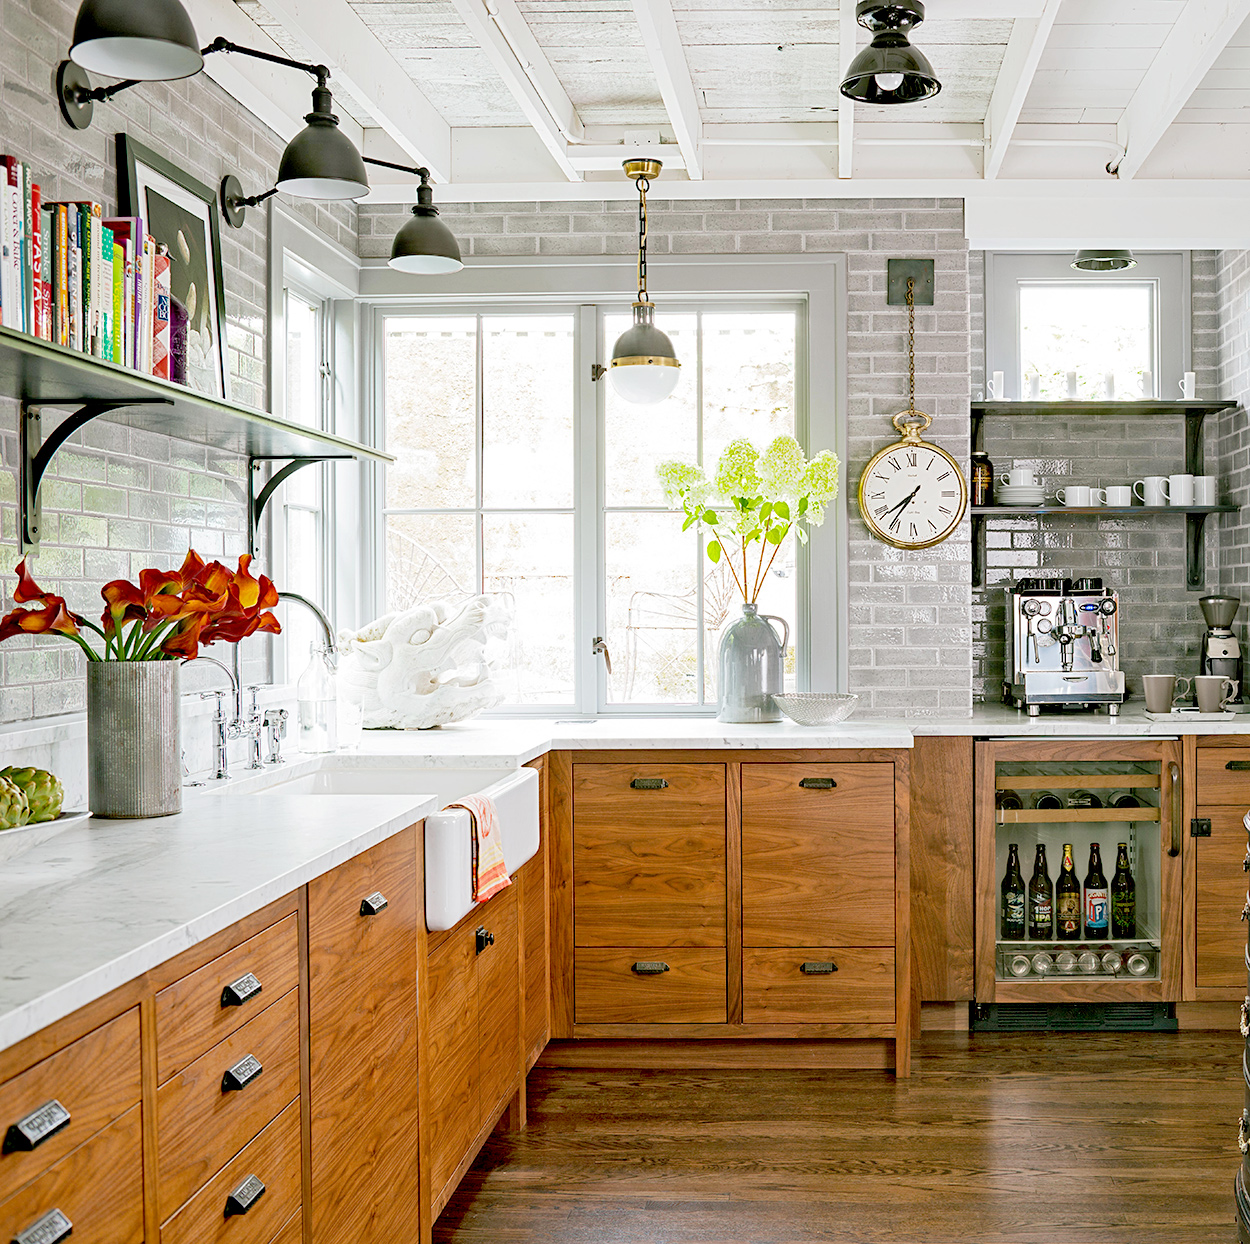 Kitchen with gray brick and wooden cabinets